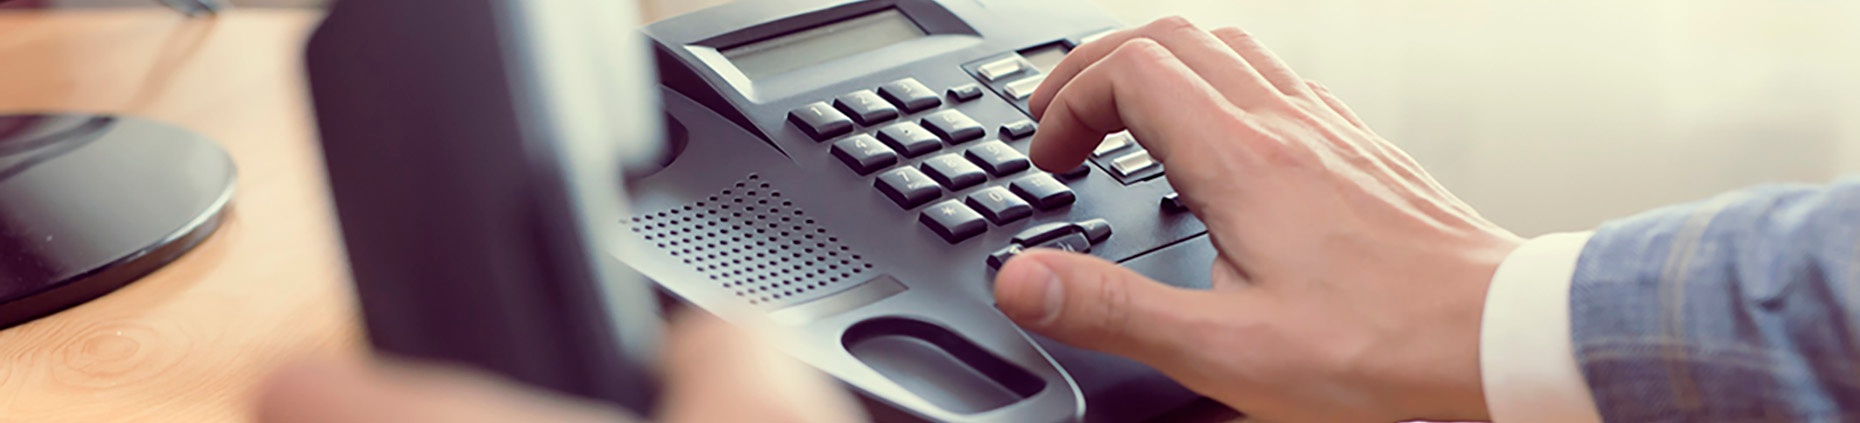 Cold Calling in Technology Sales: How Buyers Prefer to Be Contacted